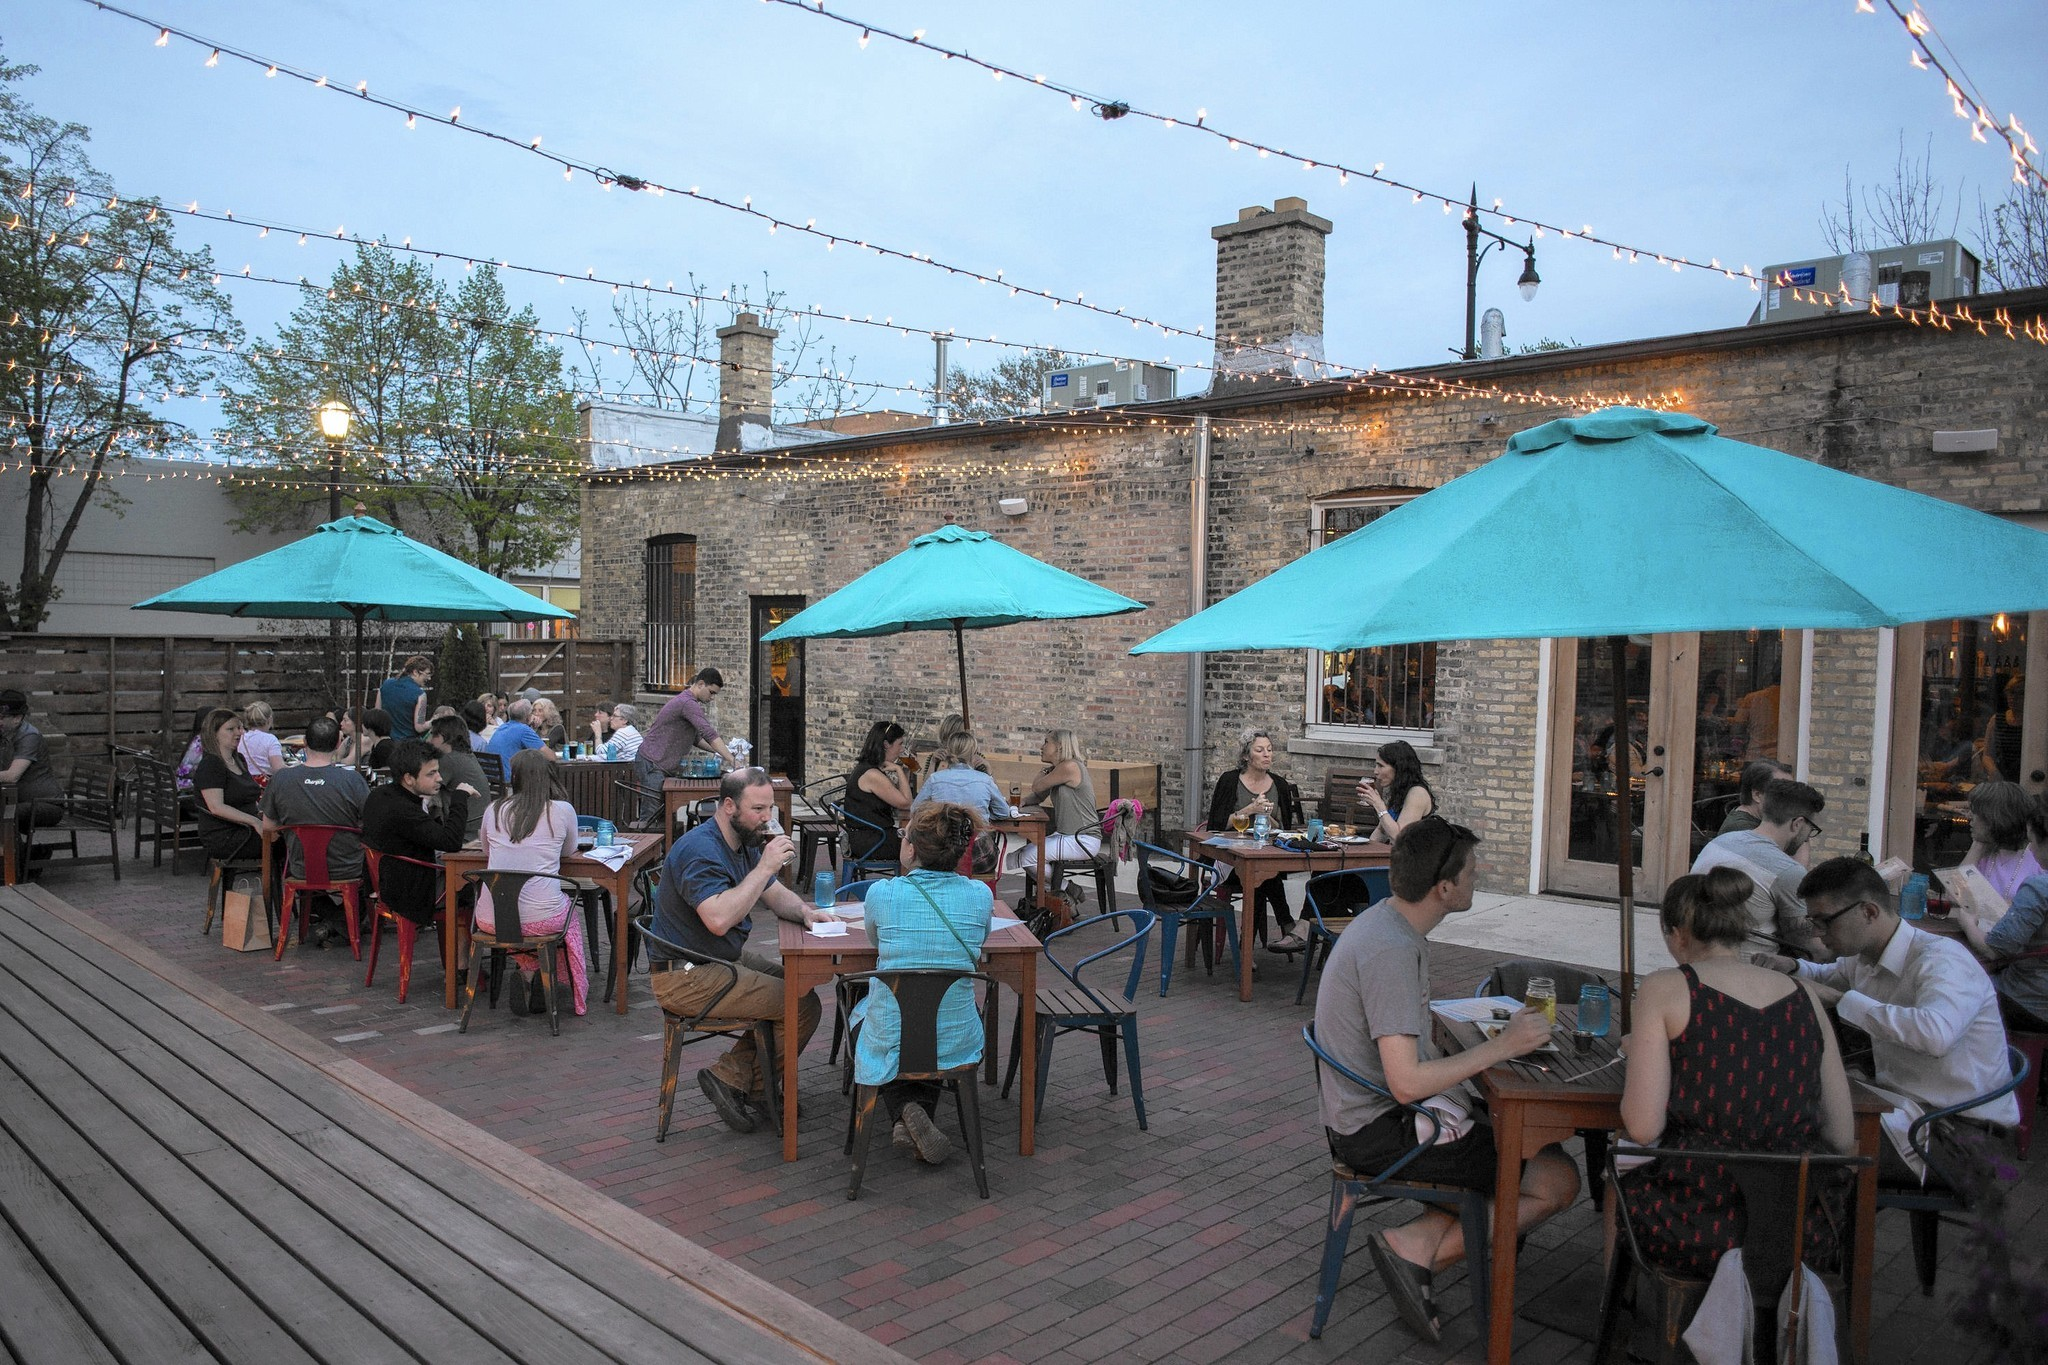 Five outdoor dining spots with new twists this season